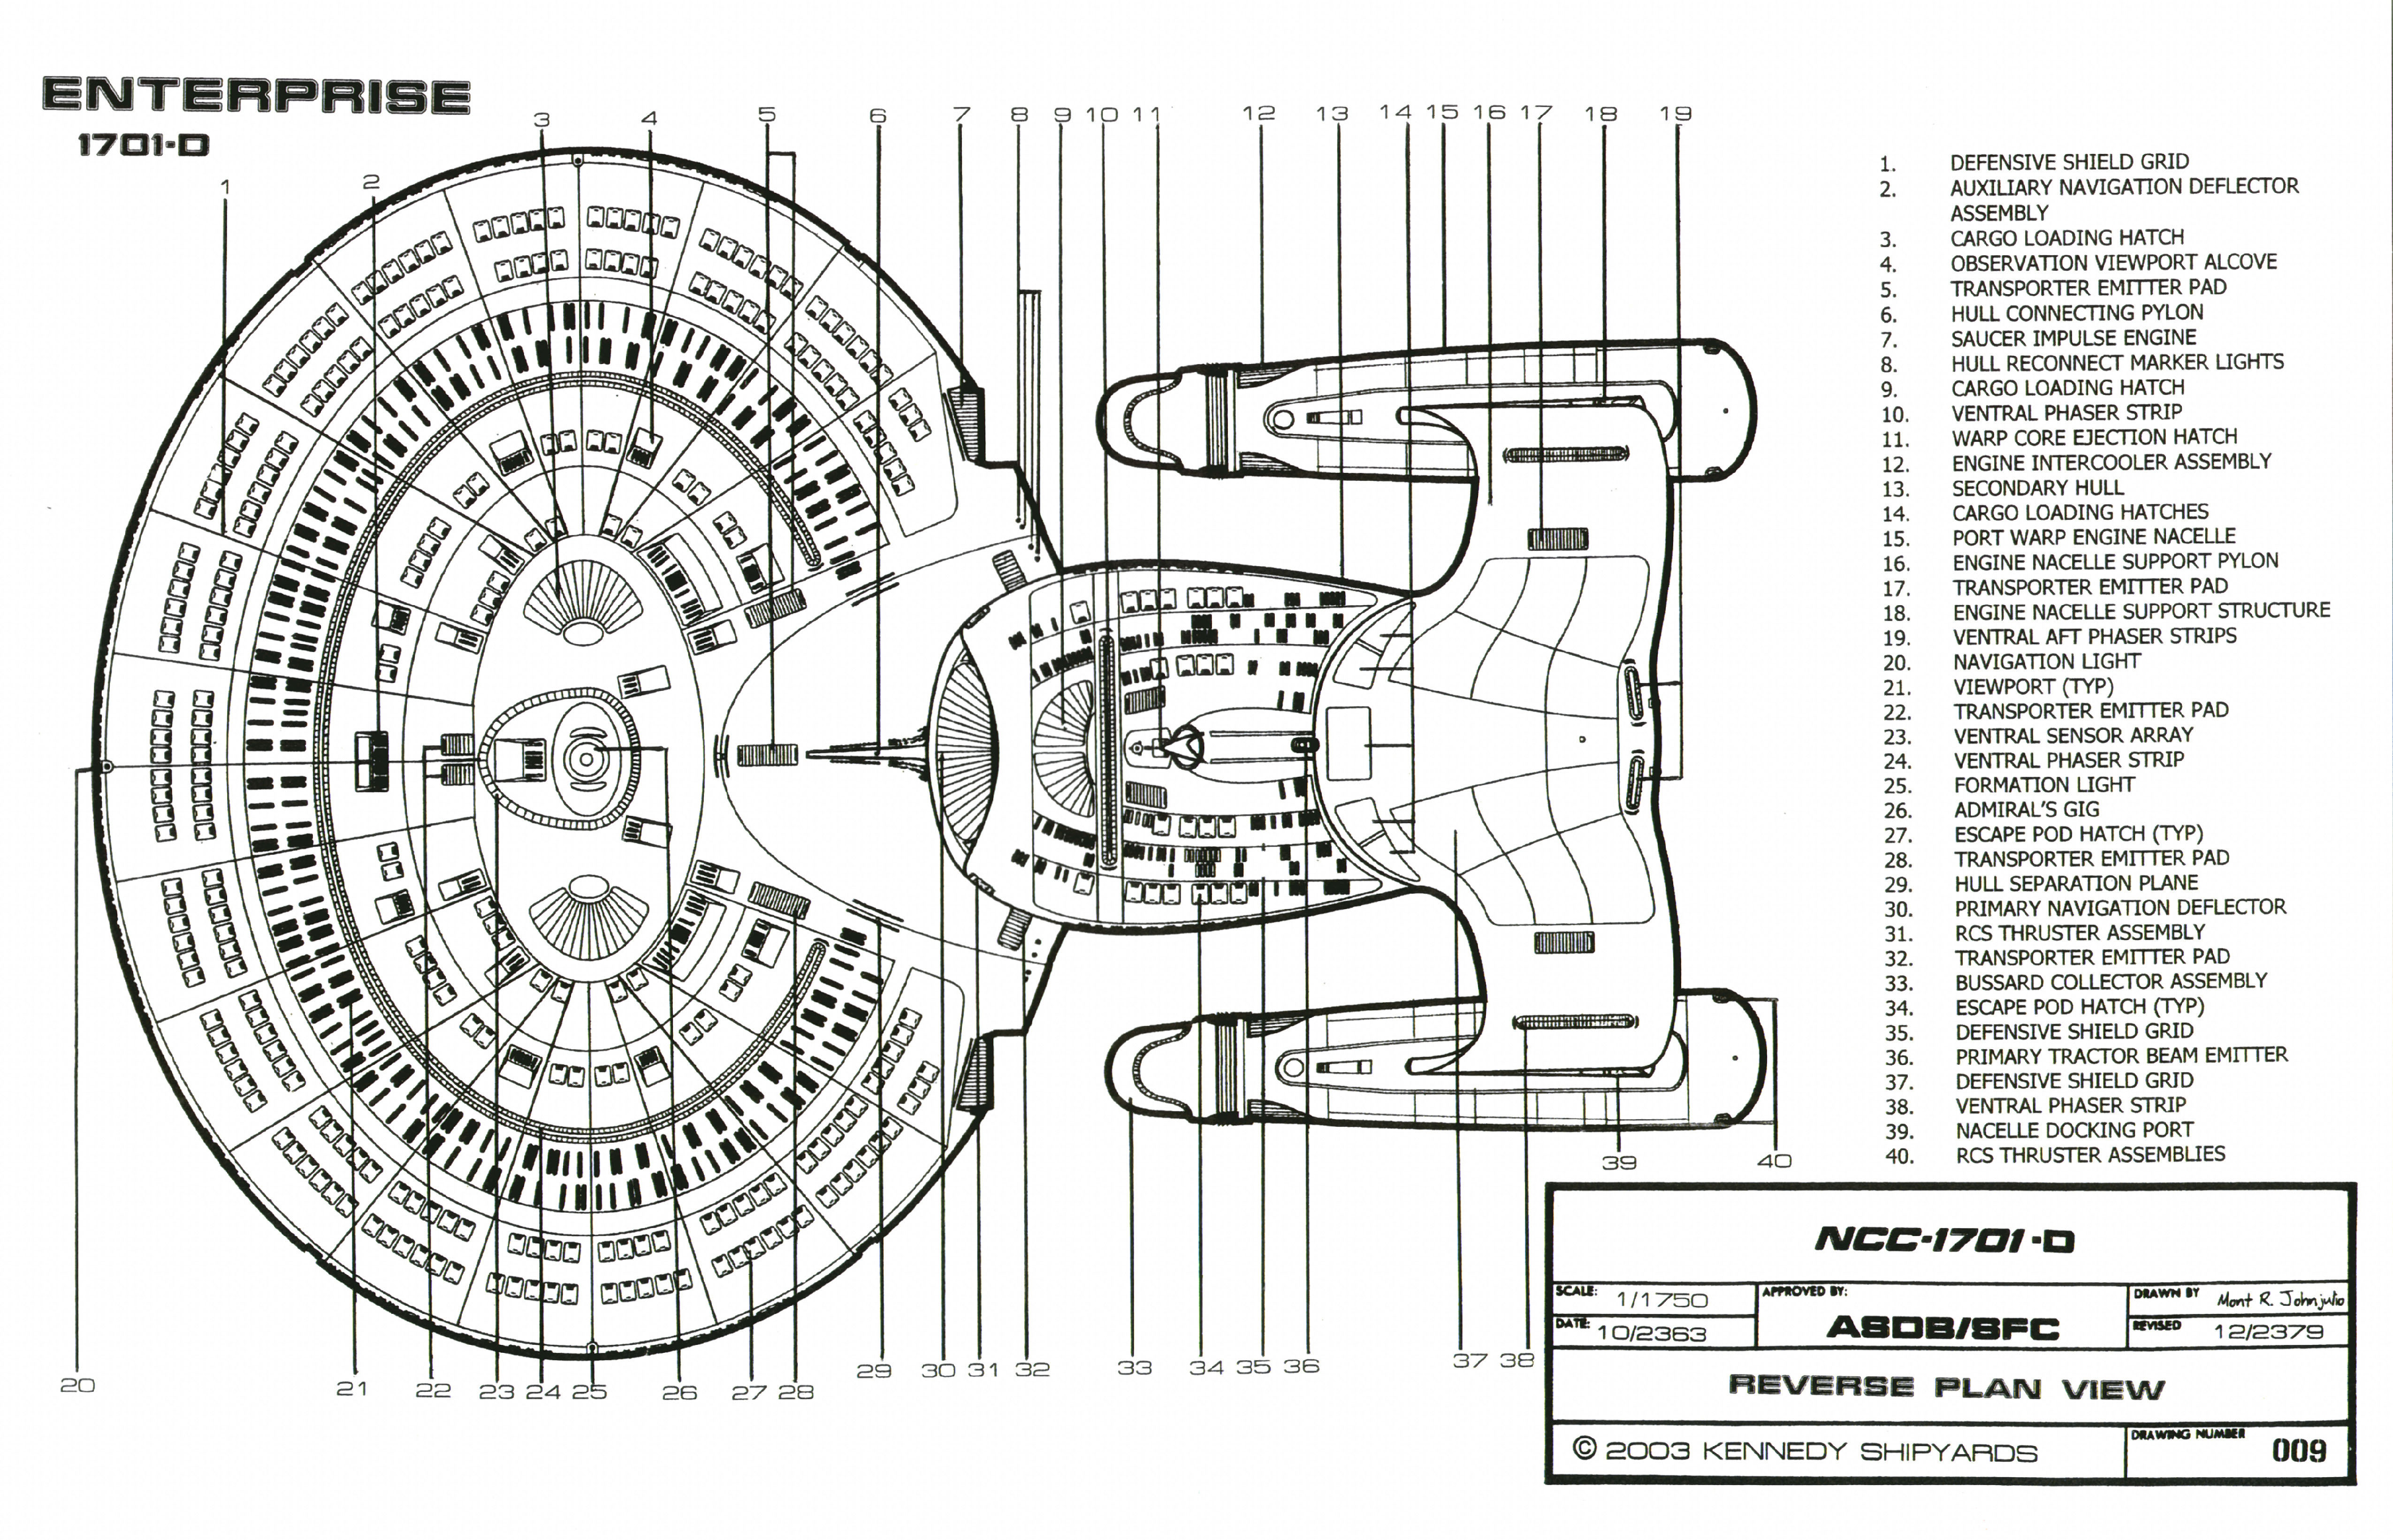 dayton zone valve wiring diagram icars schematic of saucer section of u s s enterprise ncc #15